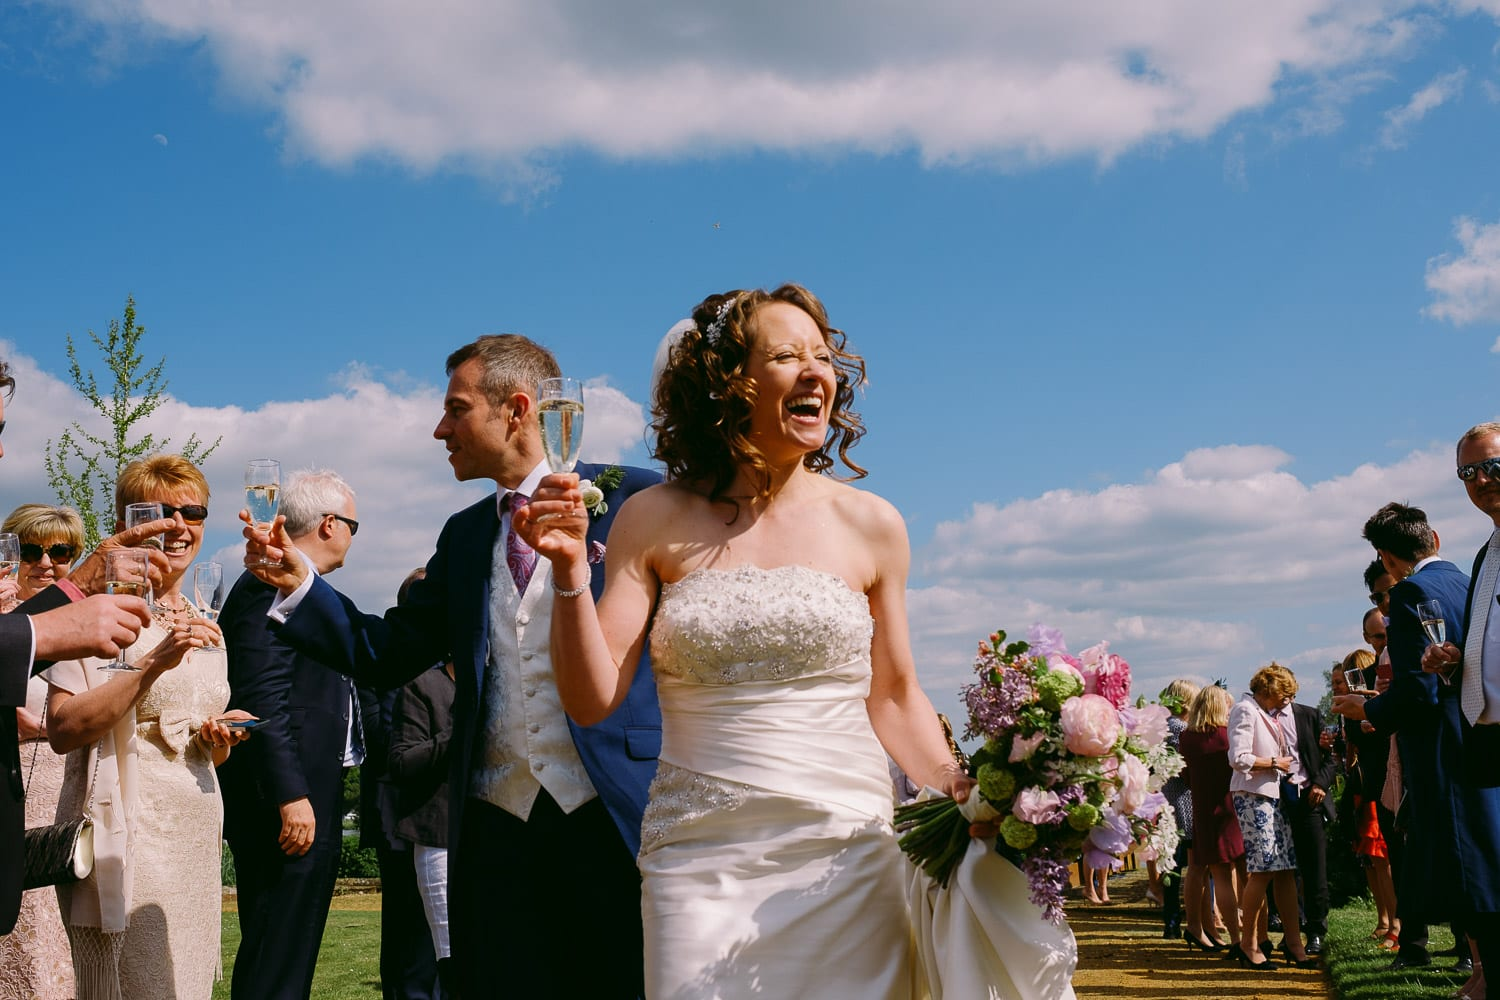 The bride and groom arrive at Greenlands